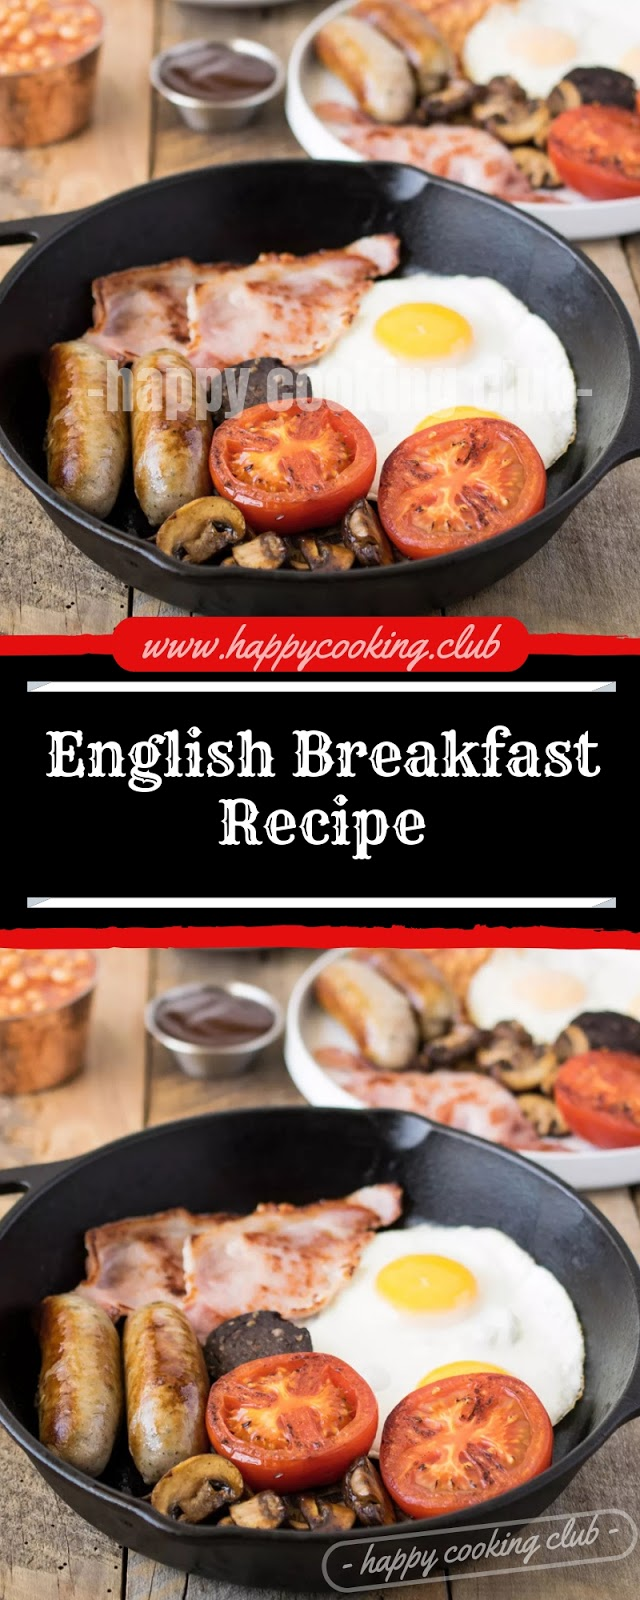 English Breakfast Recipe